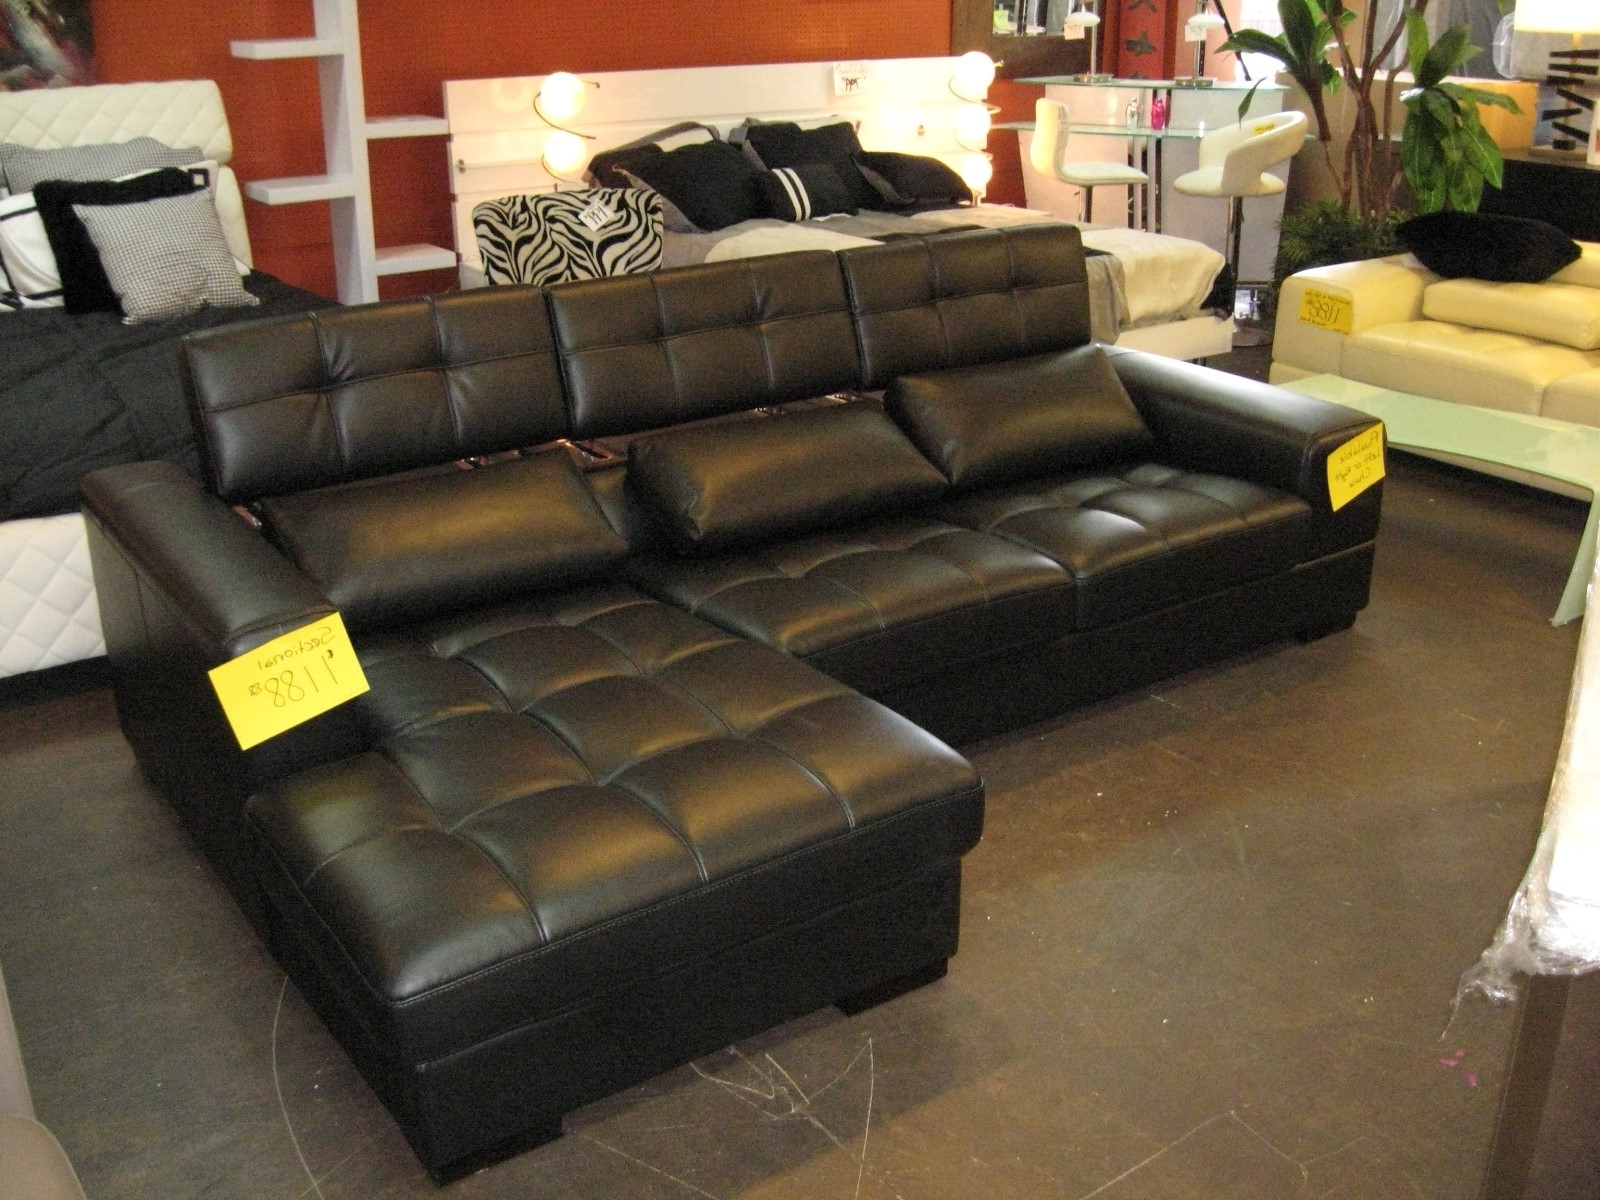 Well Known Leather Modular Sectional Sofas In Awesome Black Leather Modular Sectional Gallery – Liltigertoo (View 19 of 20)